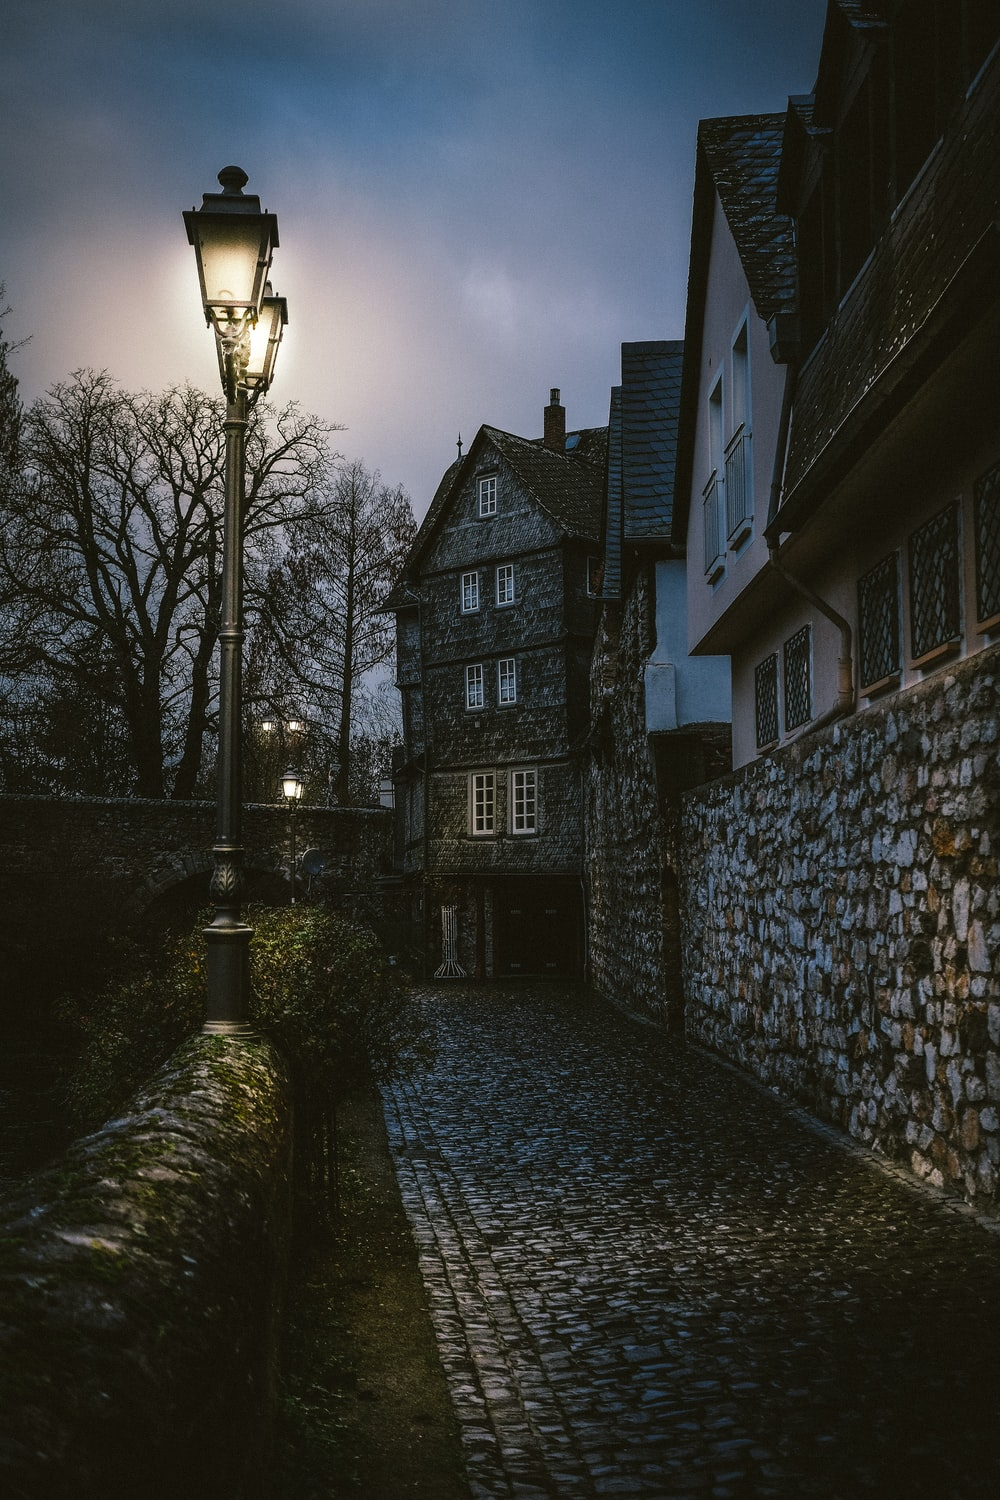 gray outdoor lights besides stone pathwaysw